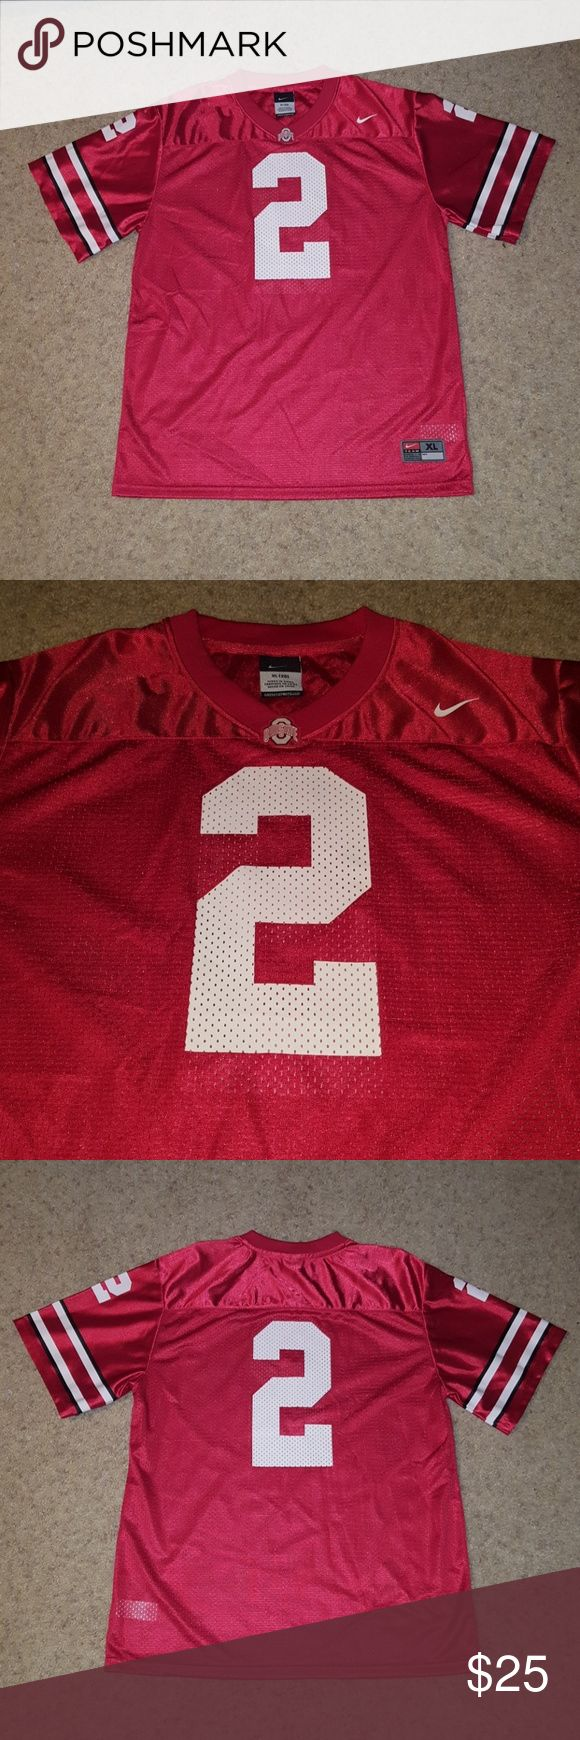 New - Ohio State Football Nike Jersey Nike Ohio State Football Jersey #2. In absolutely perfect condition. Numbers on front, back, shoulders and shoulder stripes are pristine. No flaws/tears/stains. Never worn. Size XL, Size 20. Nike Shirts & Tops